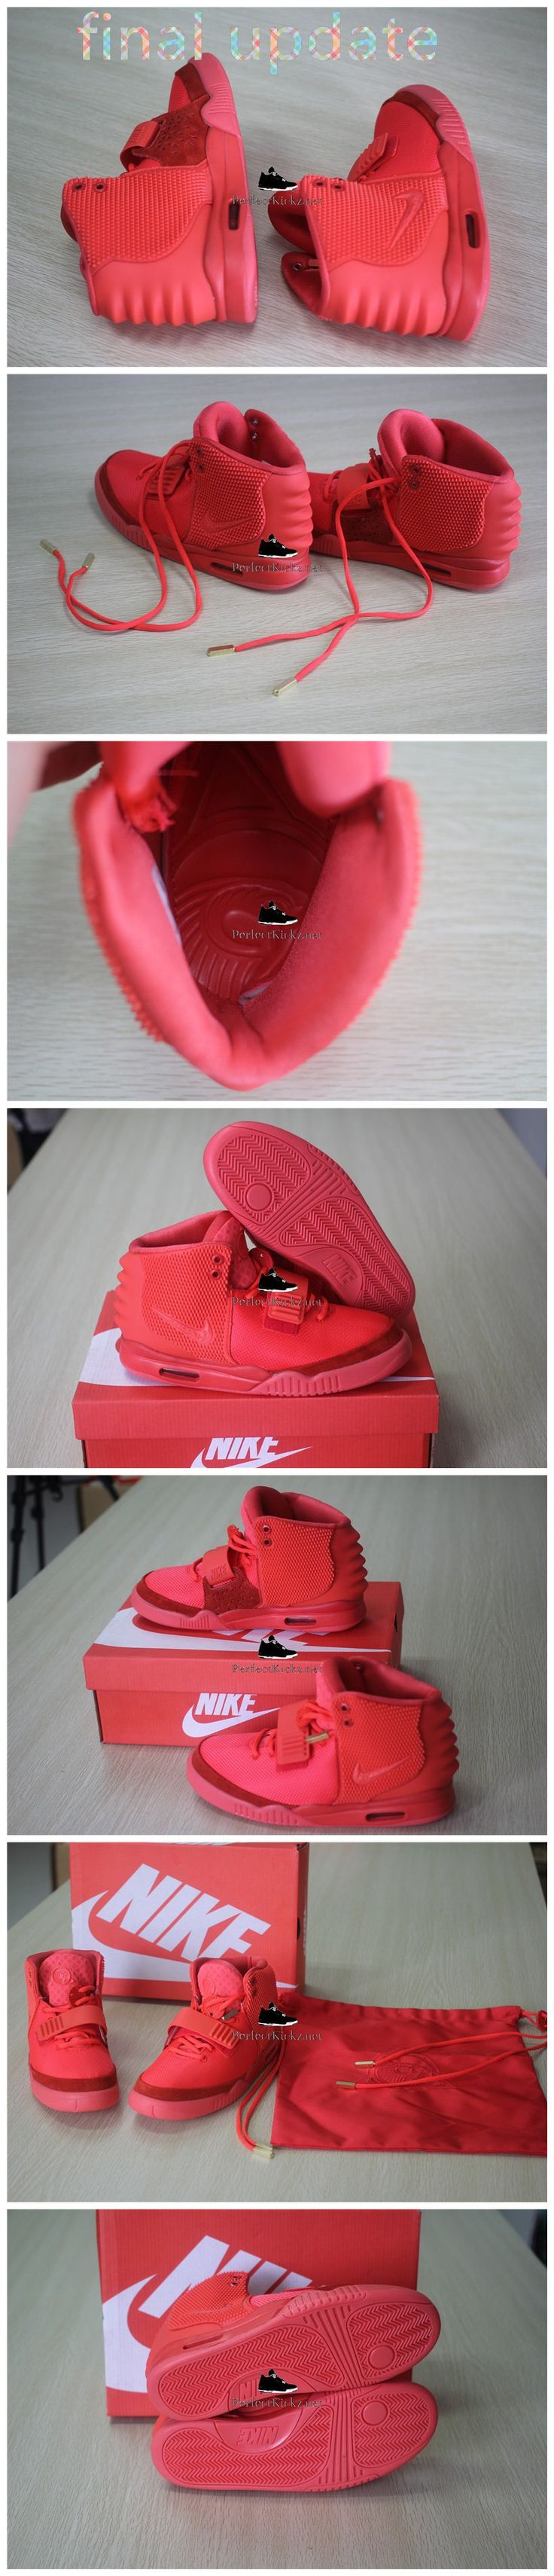 Super Max Nike  Air Yeezy  red october